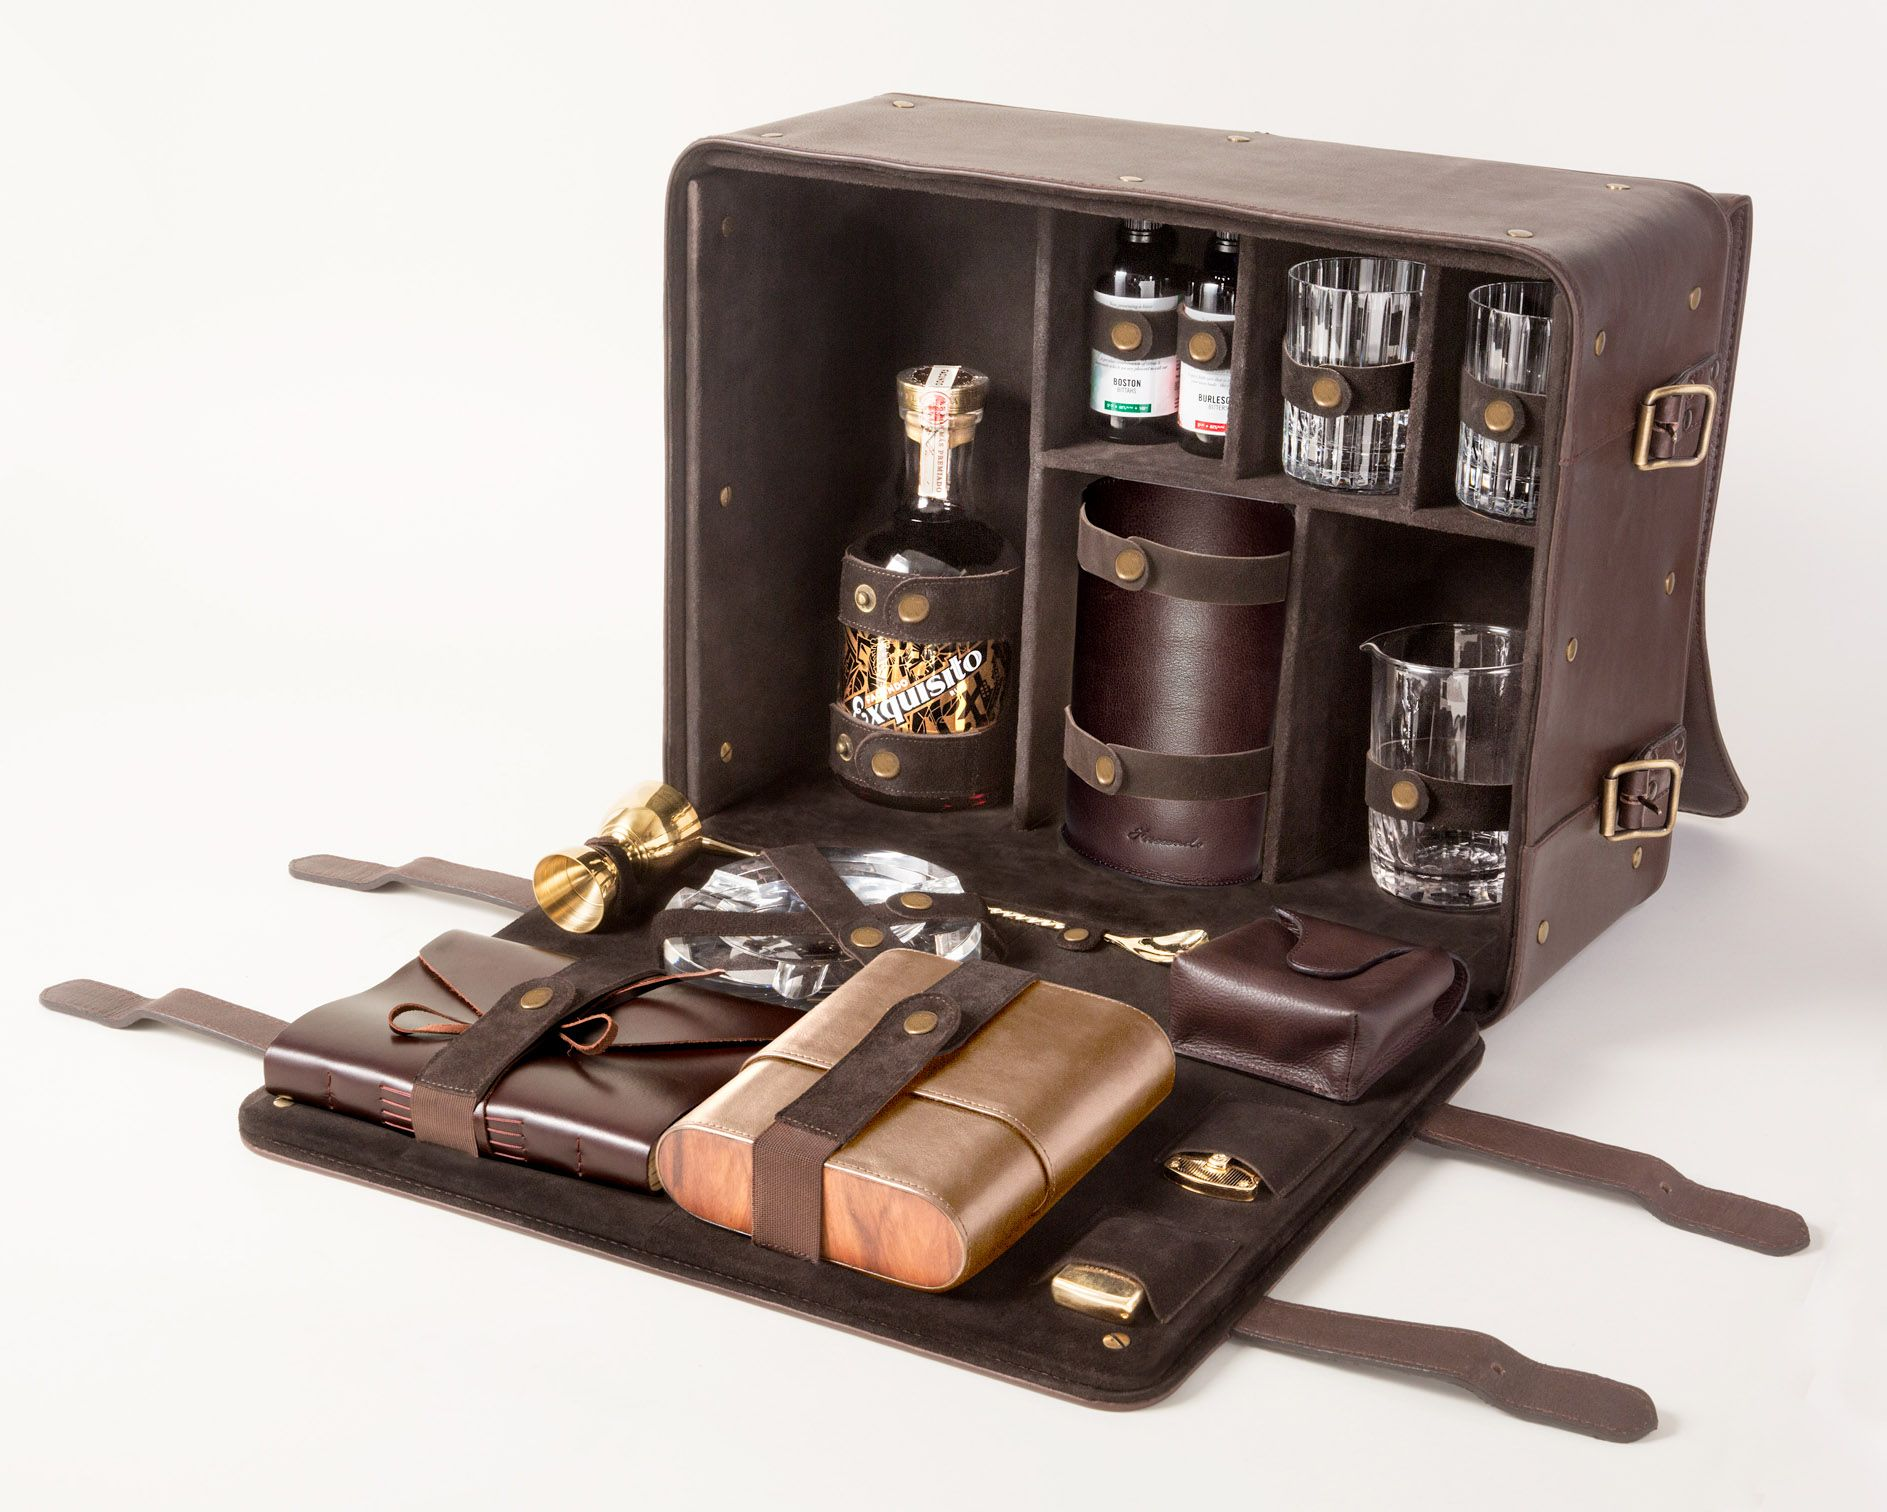 5 000 facundo elevated holiday gift set brings on the rum for High end gifts for women